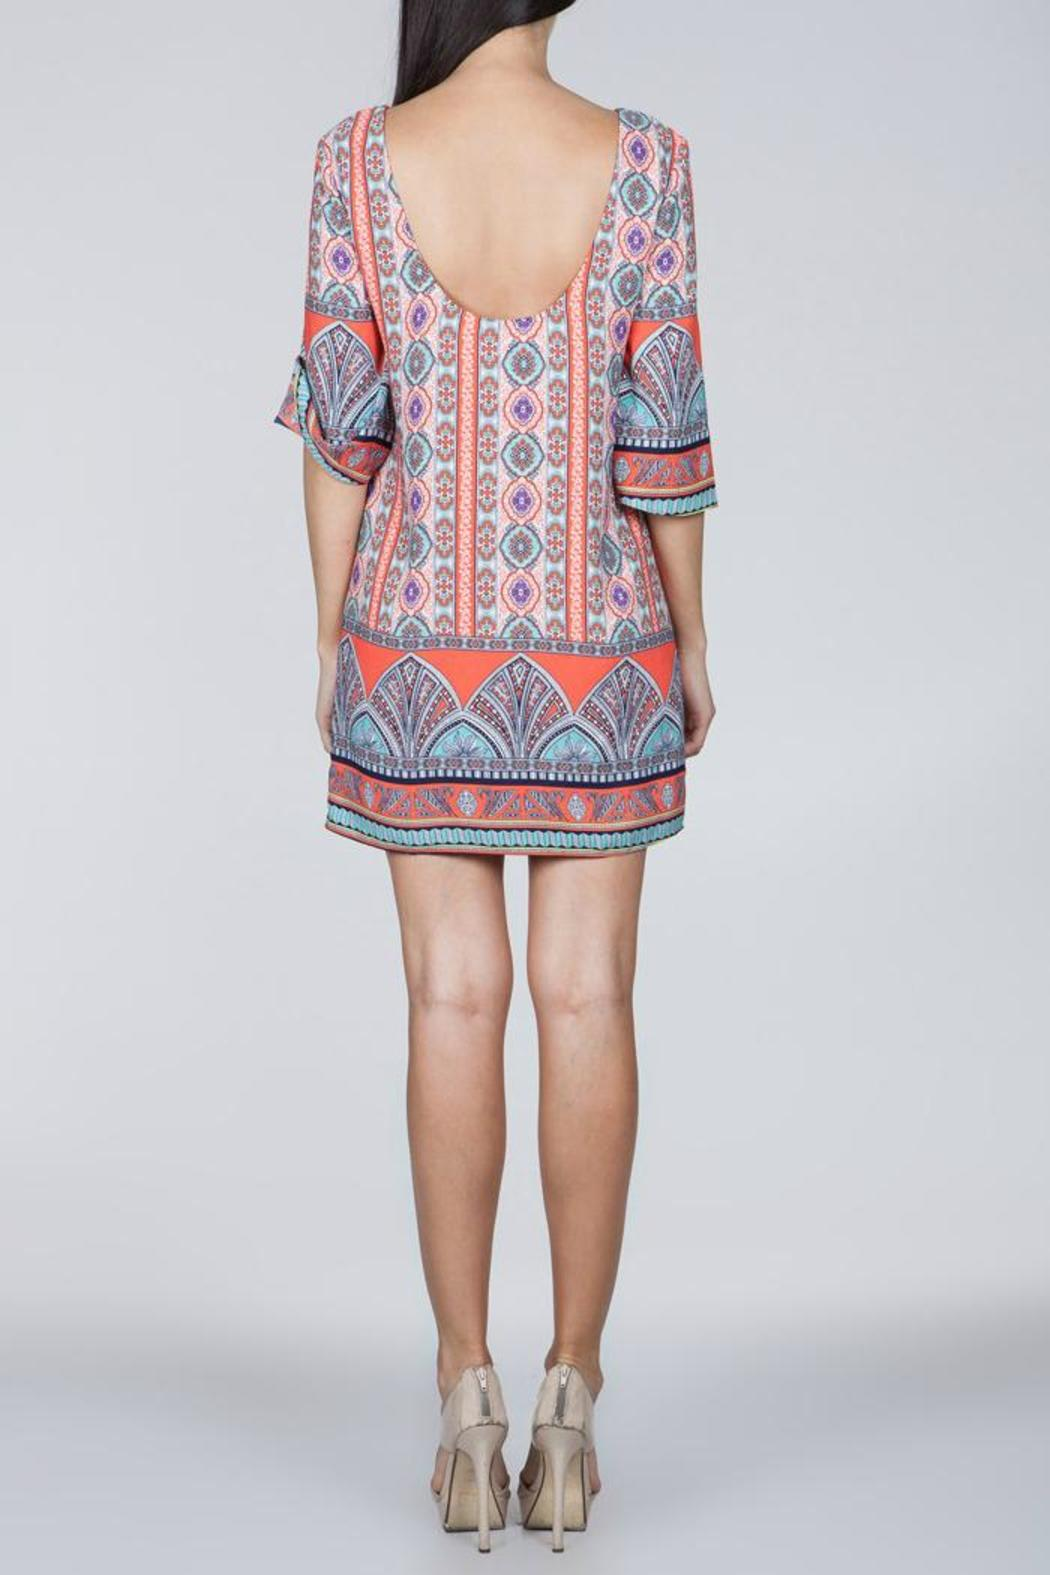 Ark & Co. Coral Printed Dress - Side Cropped Image